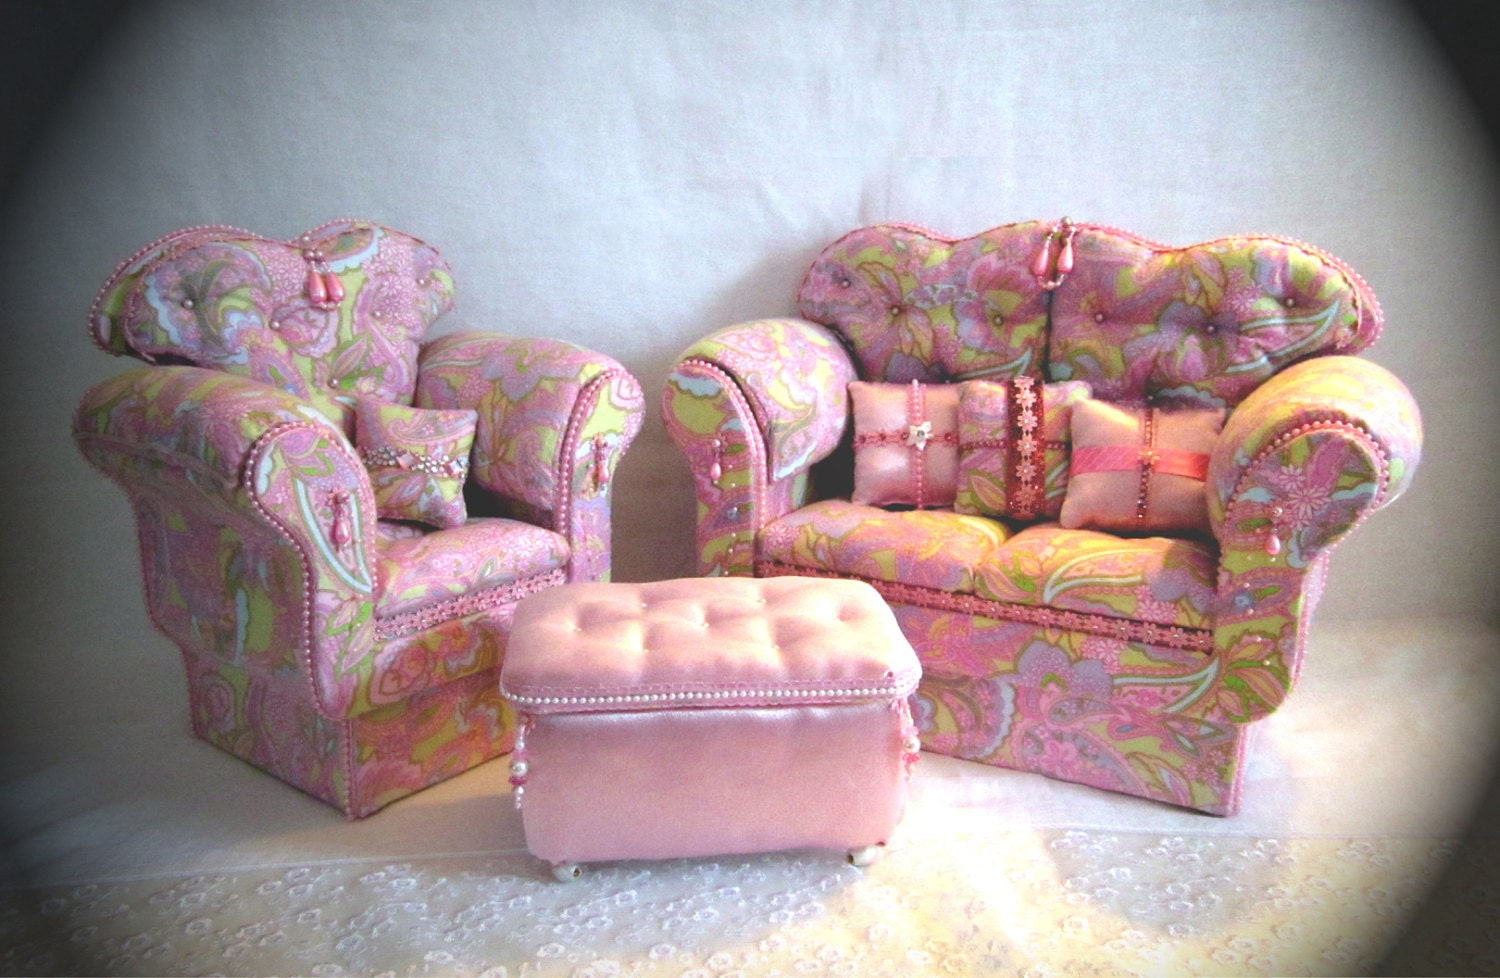 18 Doll American Girl Living Room Set By Hkdesignz On Etsy